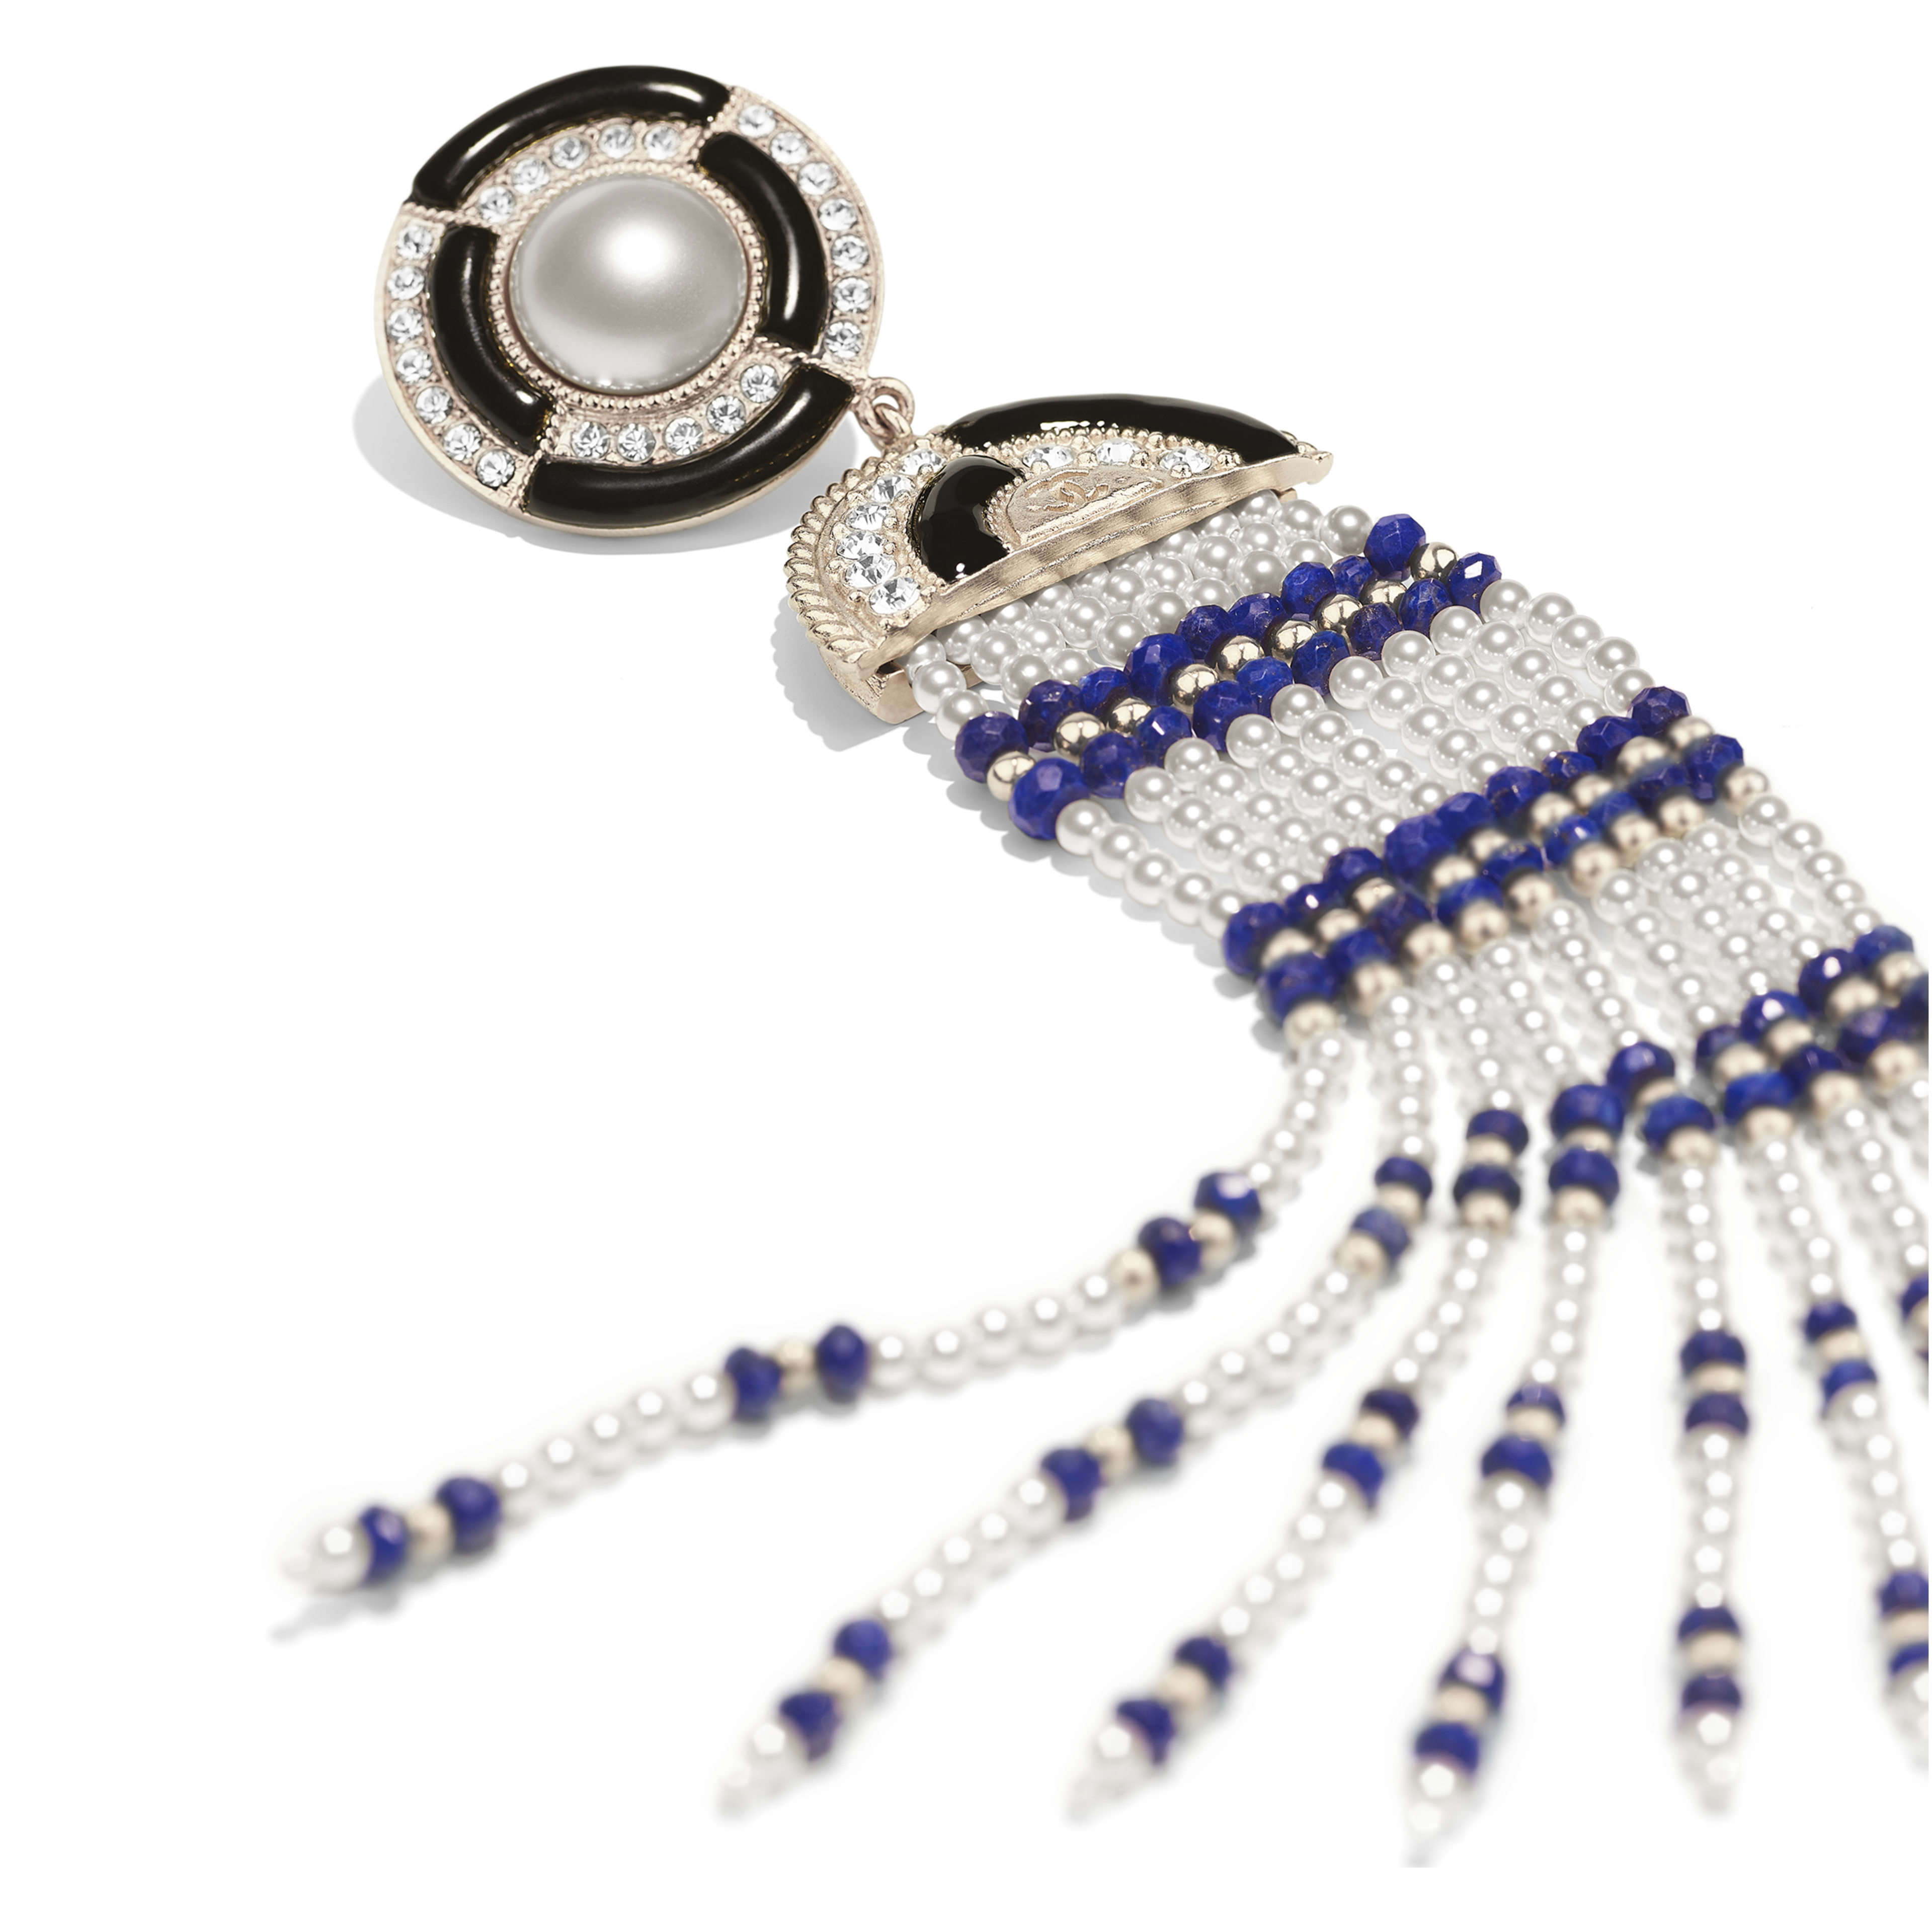 Clip-on Earrings - Gold, Black, Blue, Pearly White & Crystal - Metal, Natural Stones, Glass Pearls, Strass & Resin - Alternative view - see full sized version